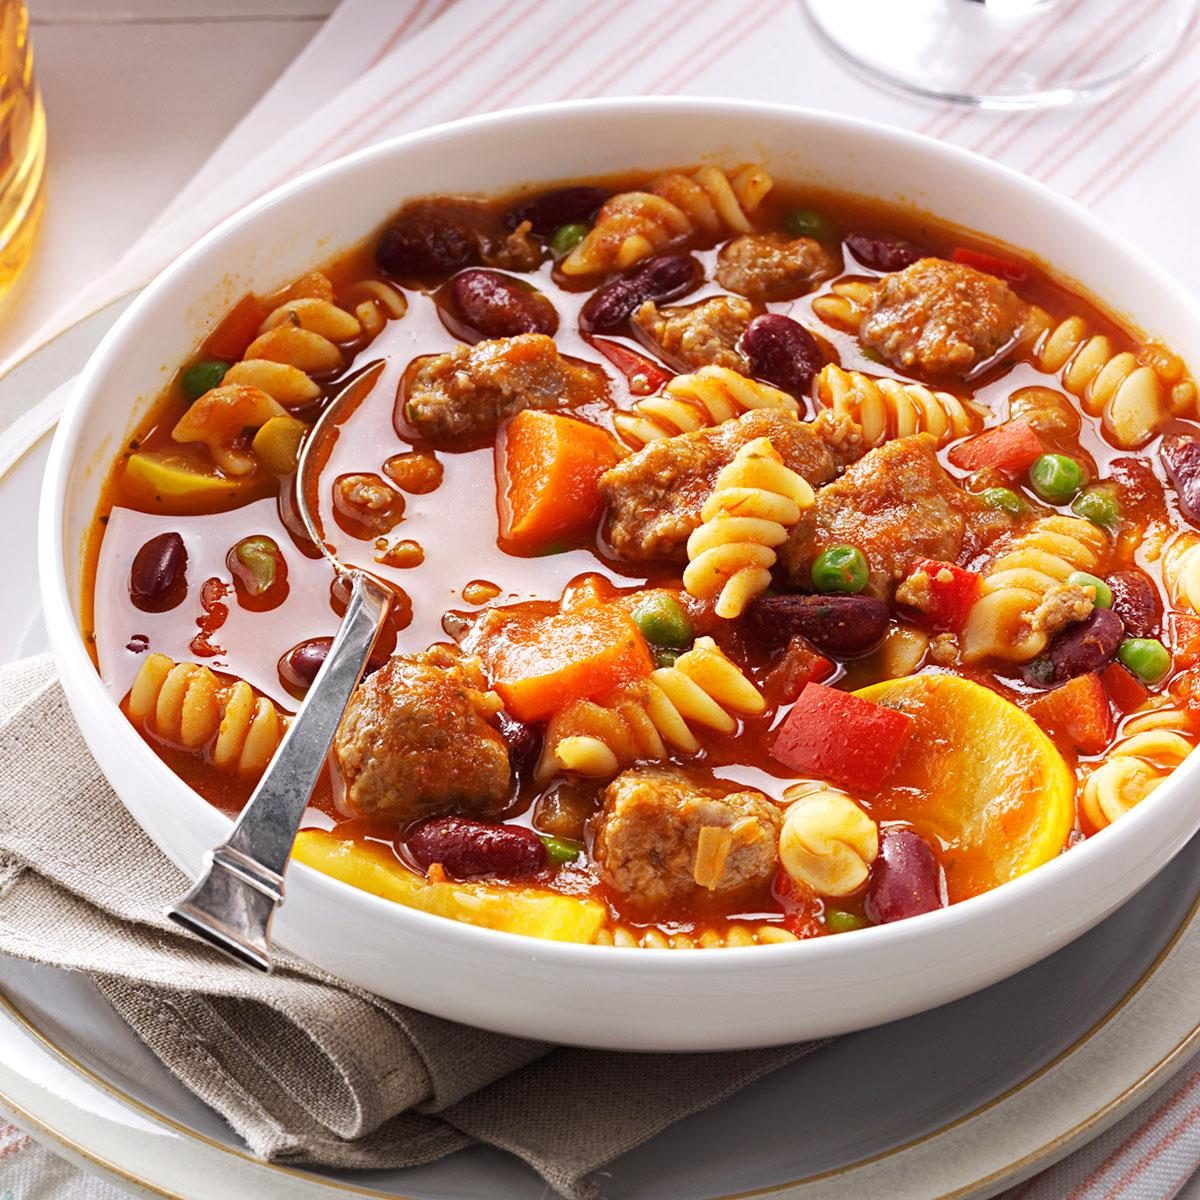 Macaroni with stew: the recipe is simple and simple